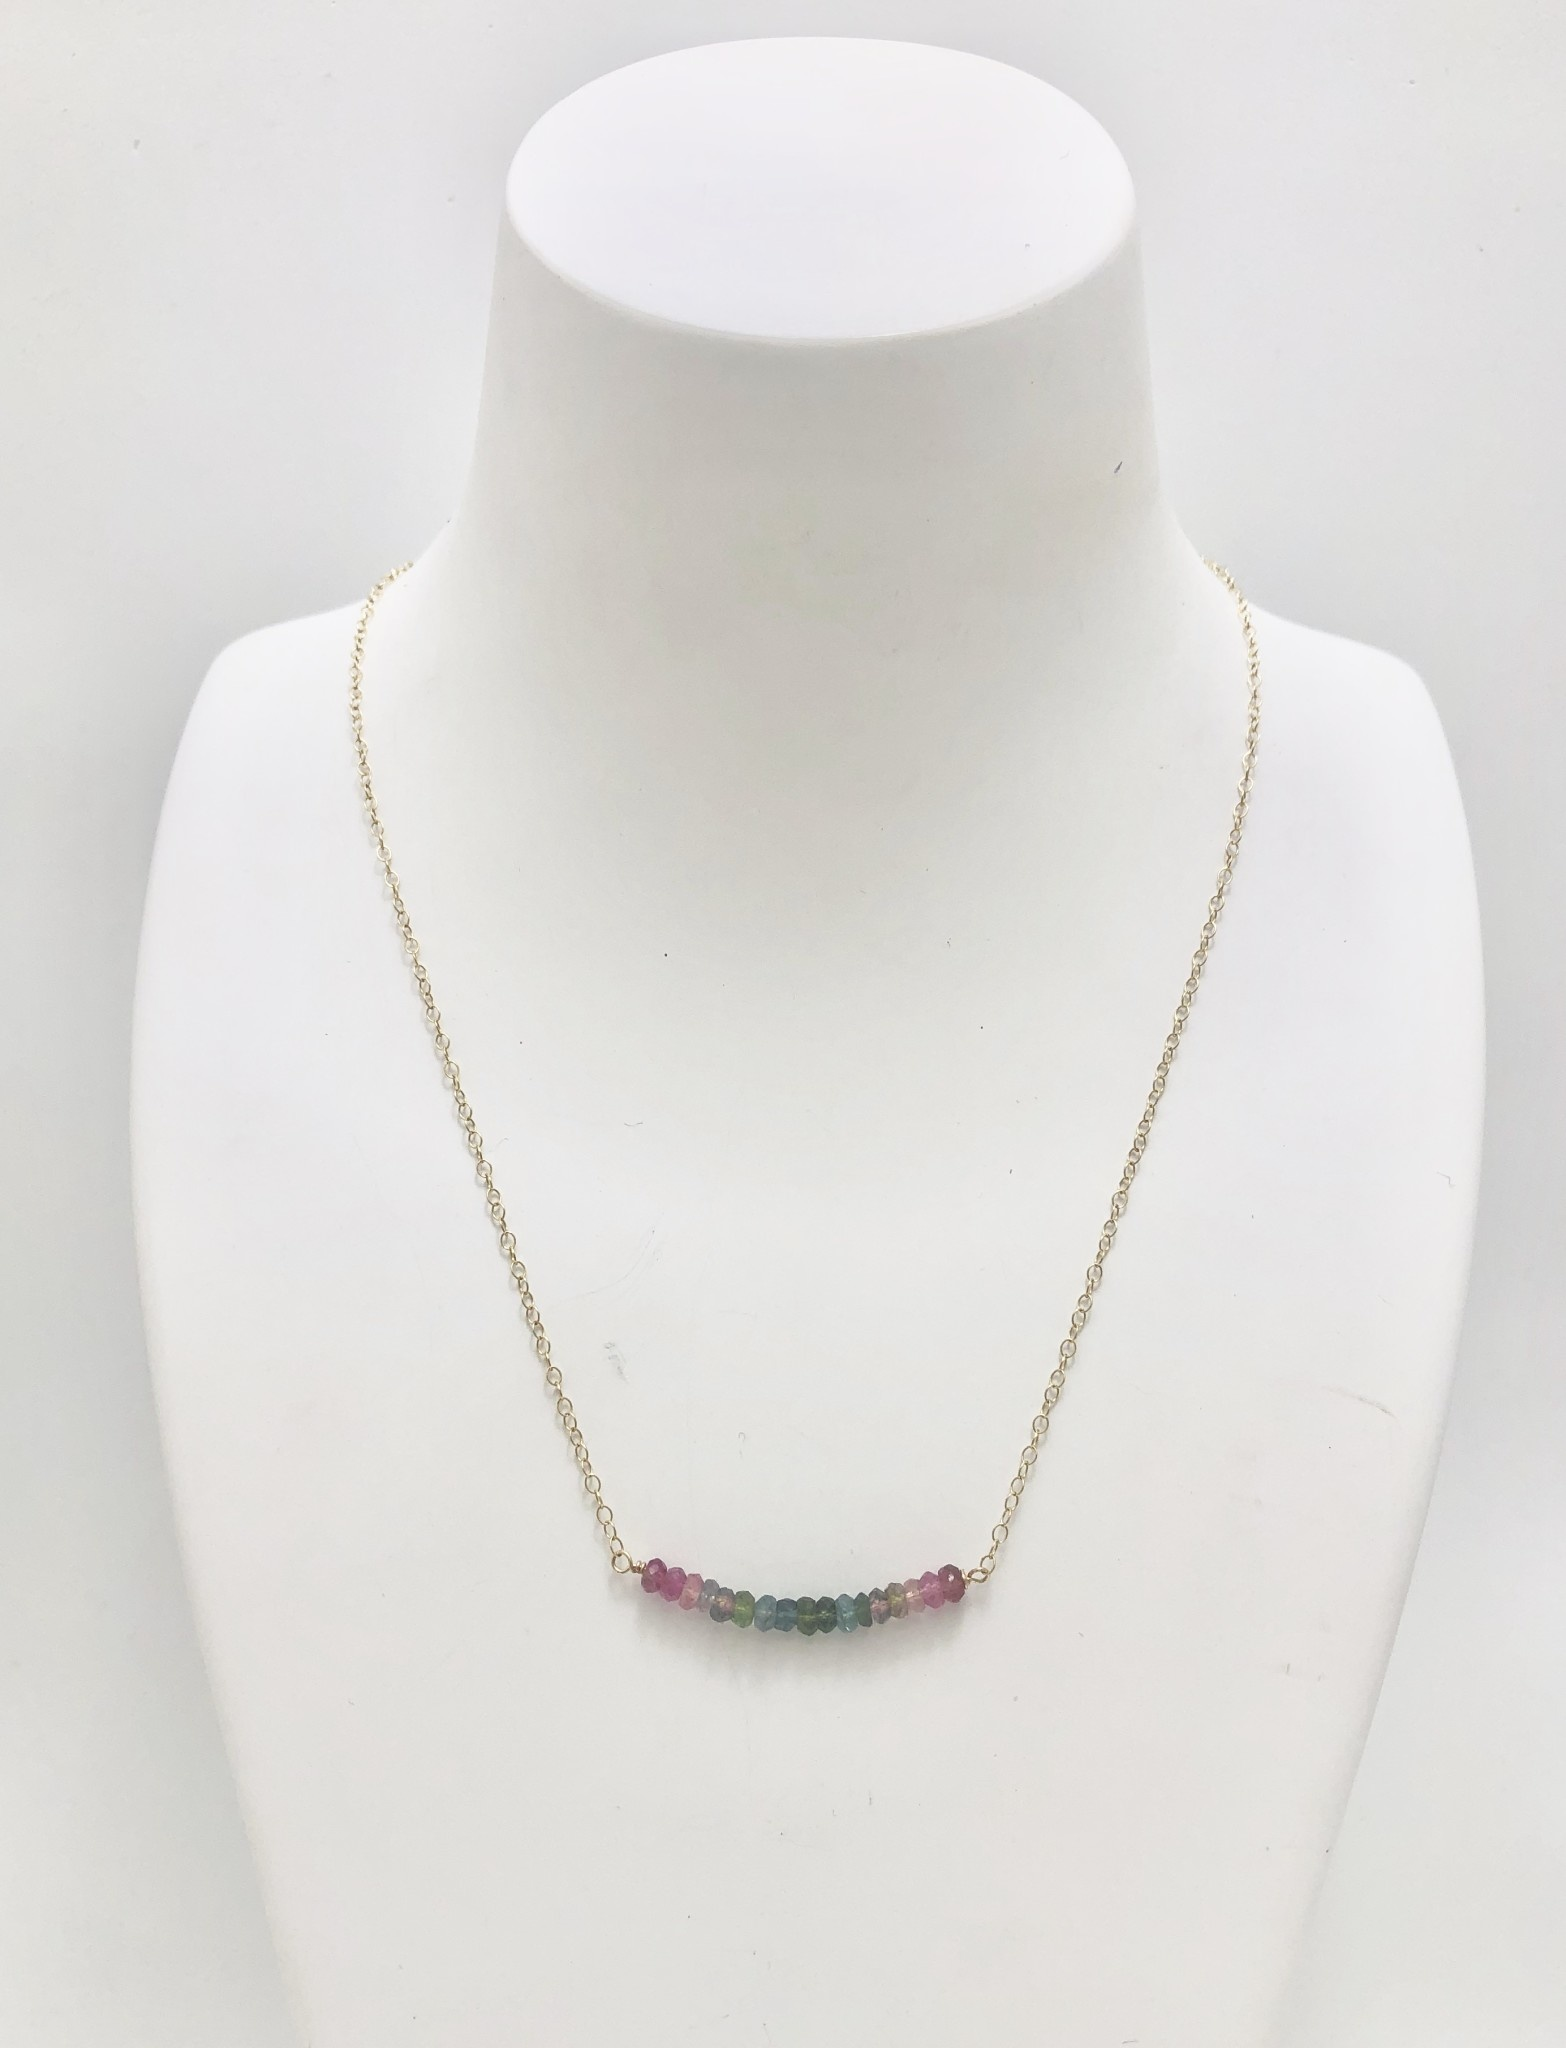 Bar of Tourmaline Necklace